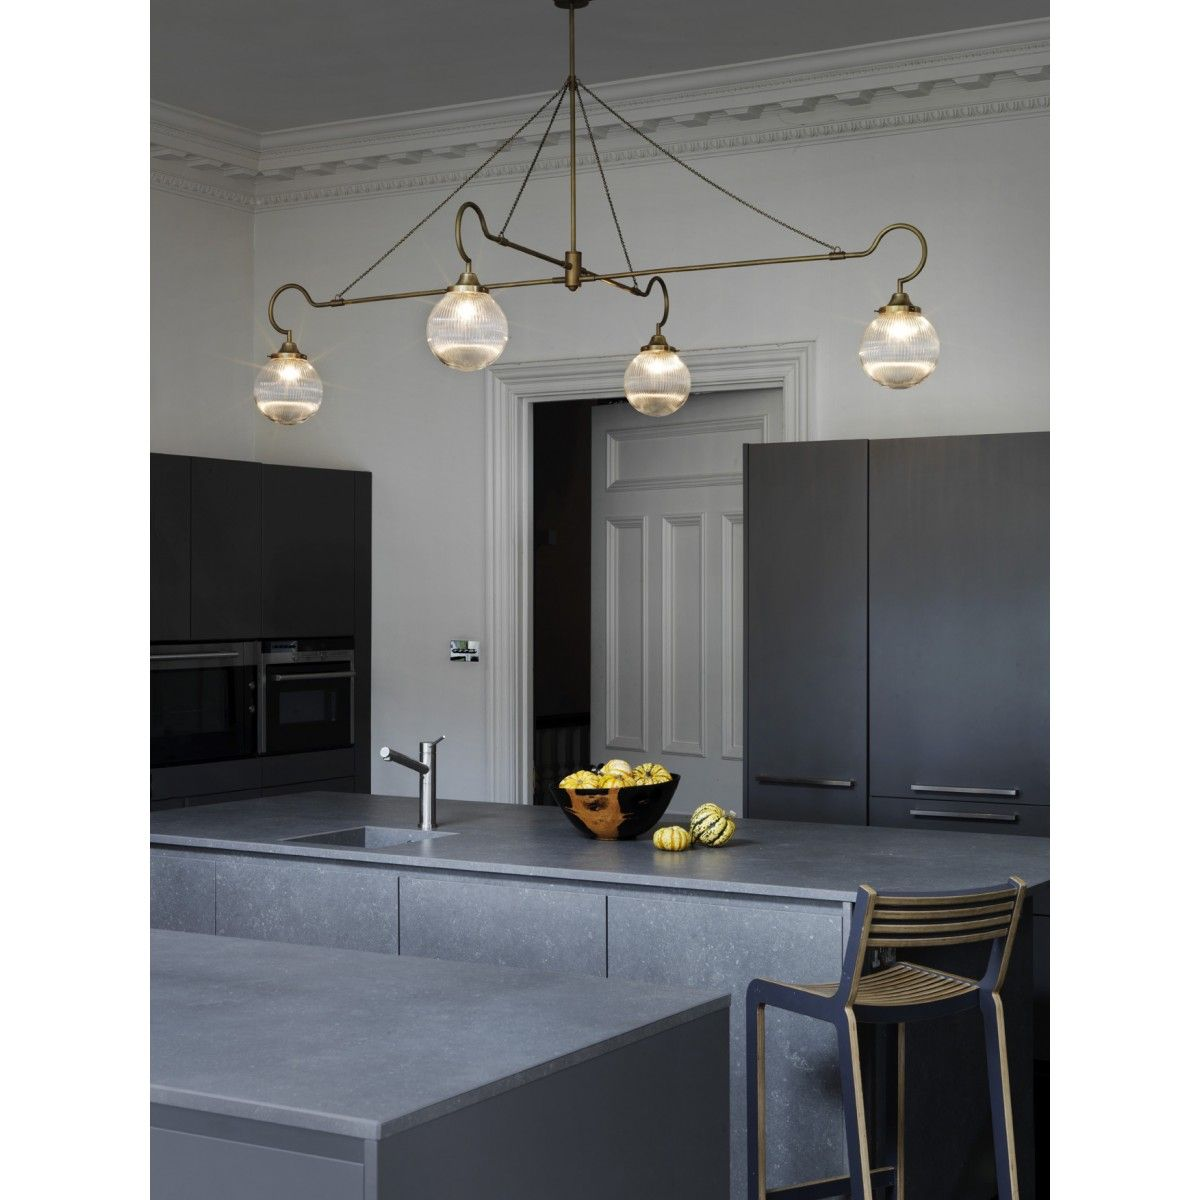 Ceiling u Pendant Lights Floren Arm Pendant Victoria Road